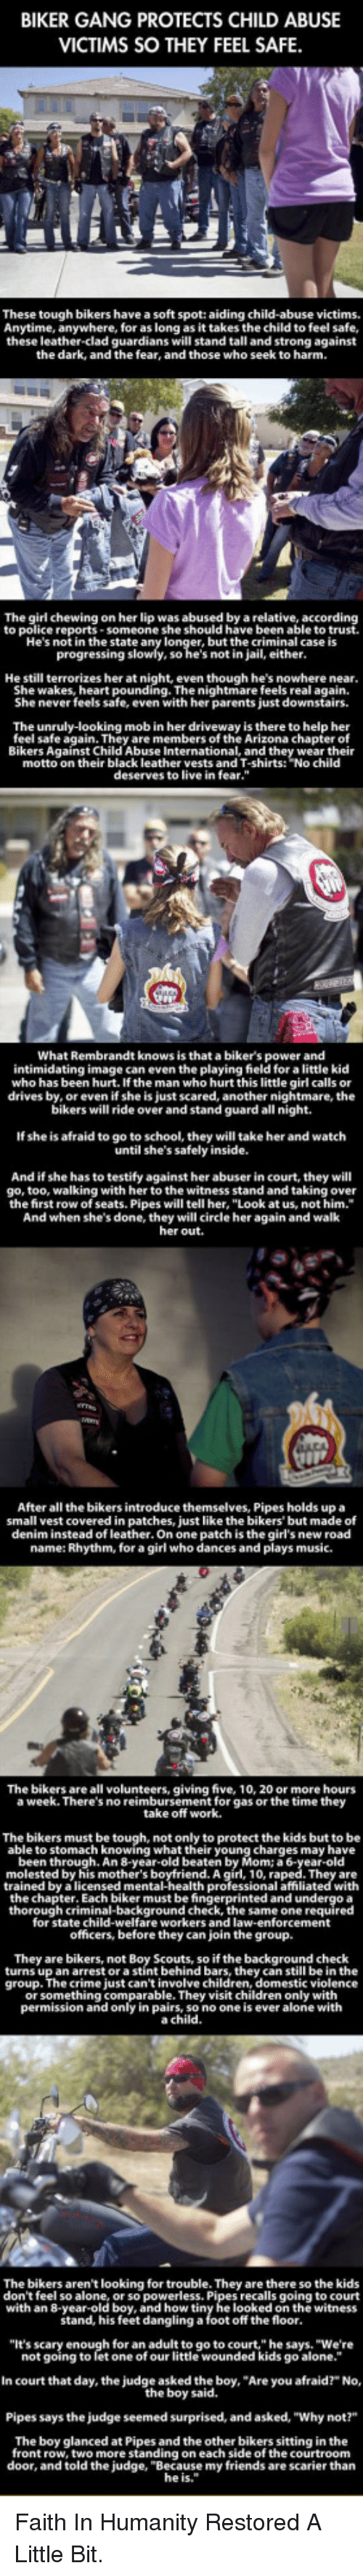 """Anytime Anywhere: BIKER GANG PROTECTS CHILD ABUSE  VICTIMS SO THEY FEEL SAFE.  These tough bikers hae a soft spot: aiding child-abuse victims.  Anytime, anywhere, for as long as it takes the child to feel safe,  these leather-clad guardians will stand tall and strong against  the dark, and the fear, and those who seek to harm.  The girl chewing on her lip was abused by a relative, according  to police reports-someone she should have been able to trust  He's not in the state  but the criminal case is  so he's not in jail, either  He still terrorizes her at night, even though he's nowhere near  She wakes, heart pounding. The nightmare feels real again.  She never feels safe, even with her parents just downstairs.  The unruly-looking mob in her driveway is there to help her  feel safe again. They are members of the Arizona chapter of  Bikers Against Child Abuse International, and they wear their  motto on their black leather vests and T-shirts: """"No child  deserves to live in fear.""""  What Rembrandt knows is that a biker's power and  intimidating image can even the playing field for a little kid  who has been hurt. If the man who hurt this little girl calls or  drives by, or even if she is just scared, another nightmare, the  bikers will ride over and stand guard all night.  If she is afraid to go to school, they will take her and watch  until she's safely inside.  And if she has to testify against her abuser in court, they wil  go, too, walking with her to the witness stand and taking over  the first row of seats. Pipes will tell her, """"Look at us, not him.""""  And when she's done, they will circle her again and walk  her out.  After all the bikers introduce themselves, Pipes holds upa  small vest covered in patches, just like the bikers' but made of  denim instead of leather. On one patch is the girl's new road  name: Rhythm, for a girl who dances and plays music.  The bikers are all volunteers, giving five, 10, 20 or more hours  a week. There's no reimbursement for gas o"""